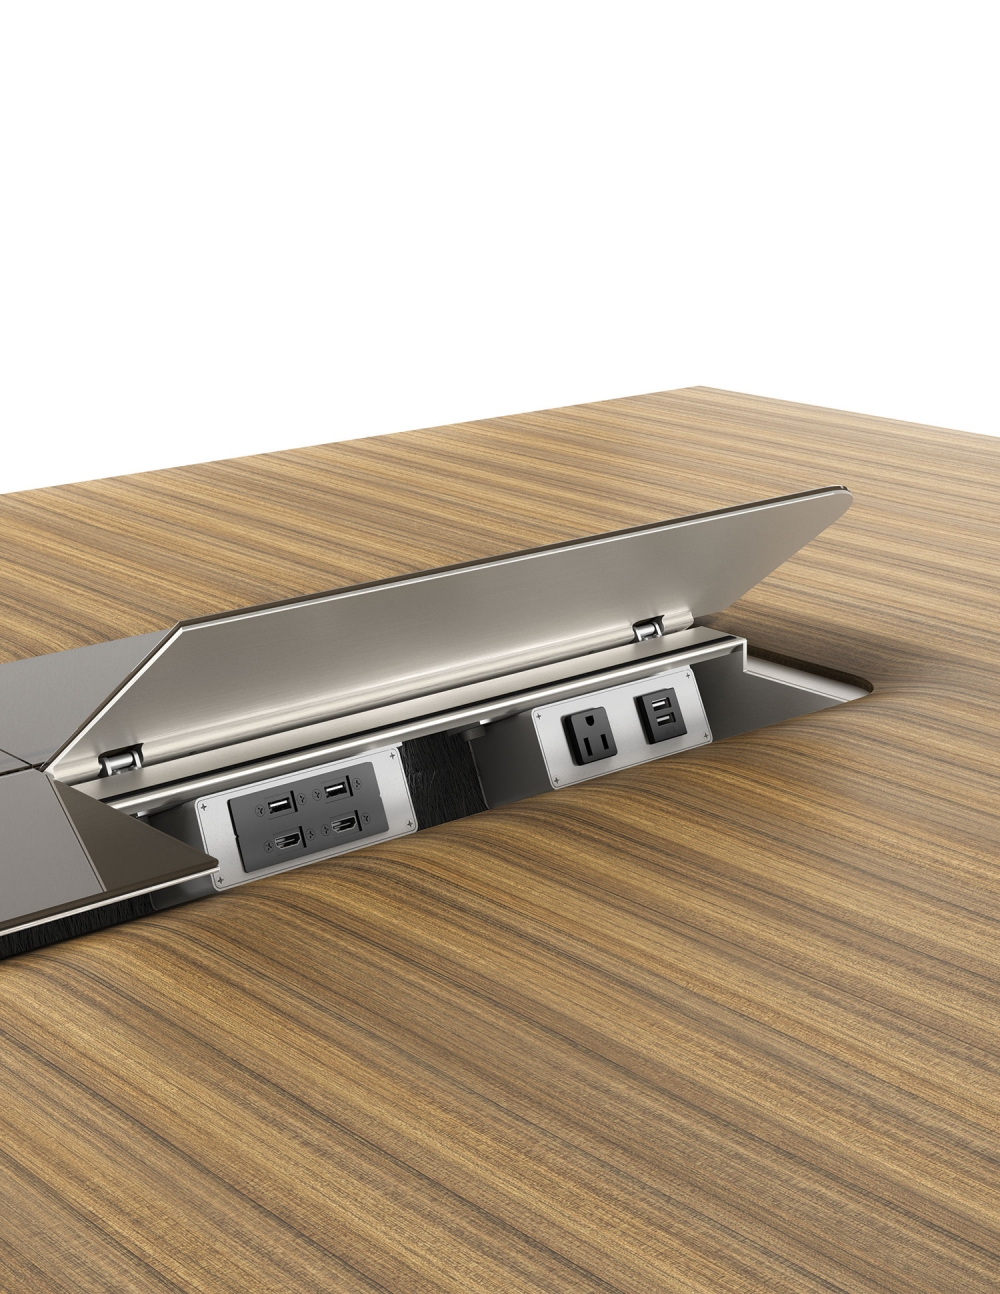 Preview of Power Island | Power and Tech | Flow Table | M76 Paldao Veneer | VG Clove Backpainted Glass